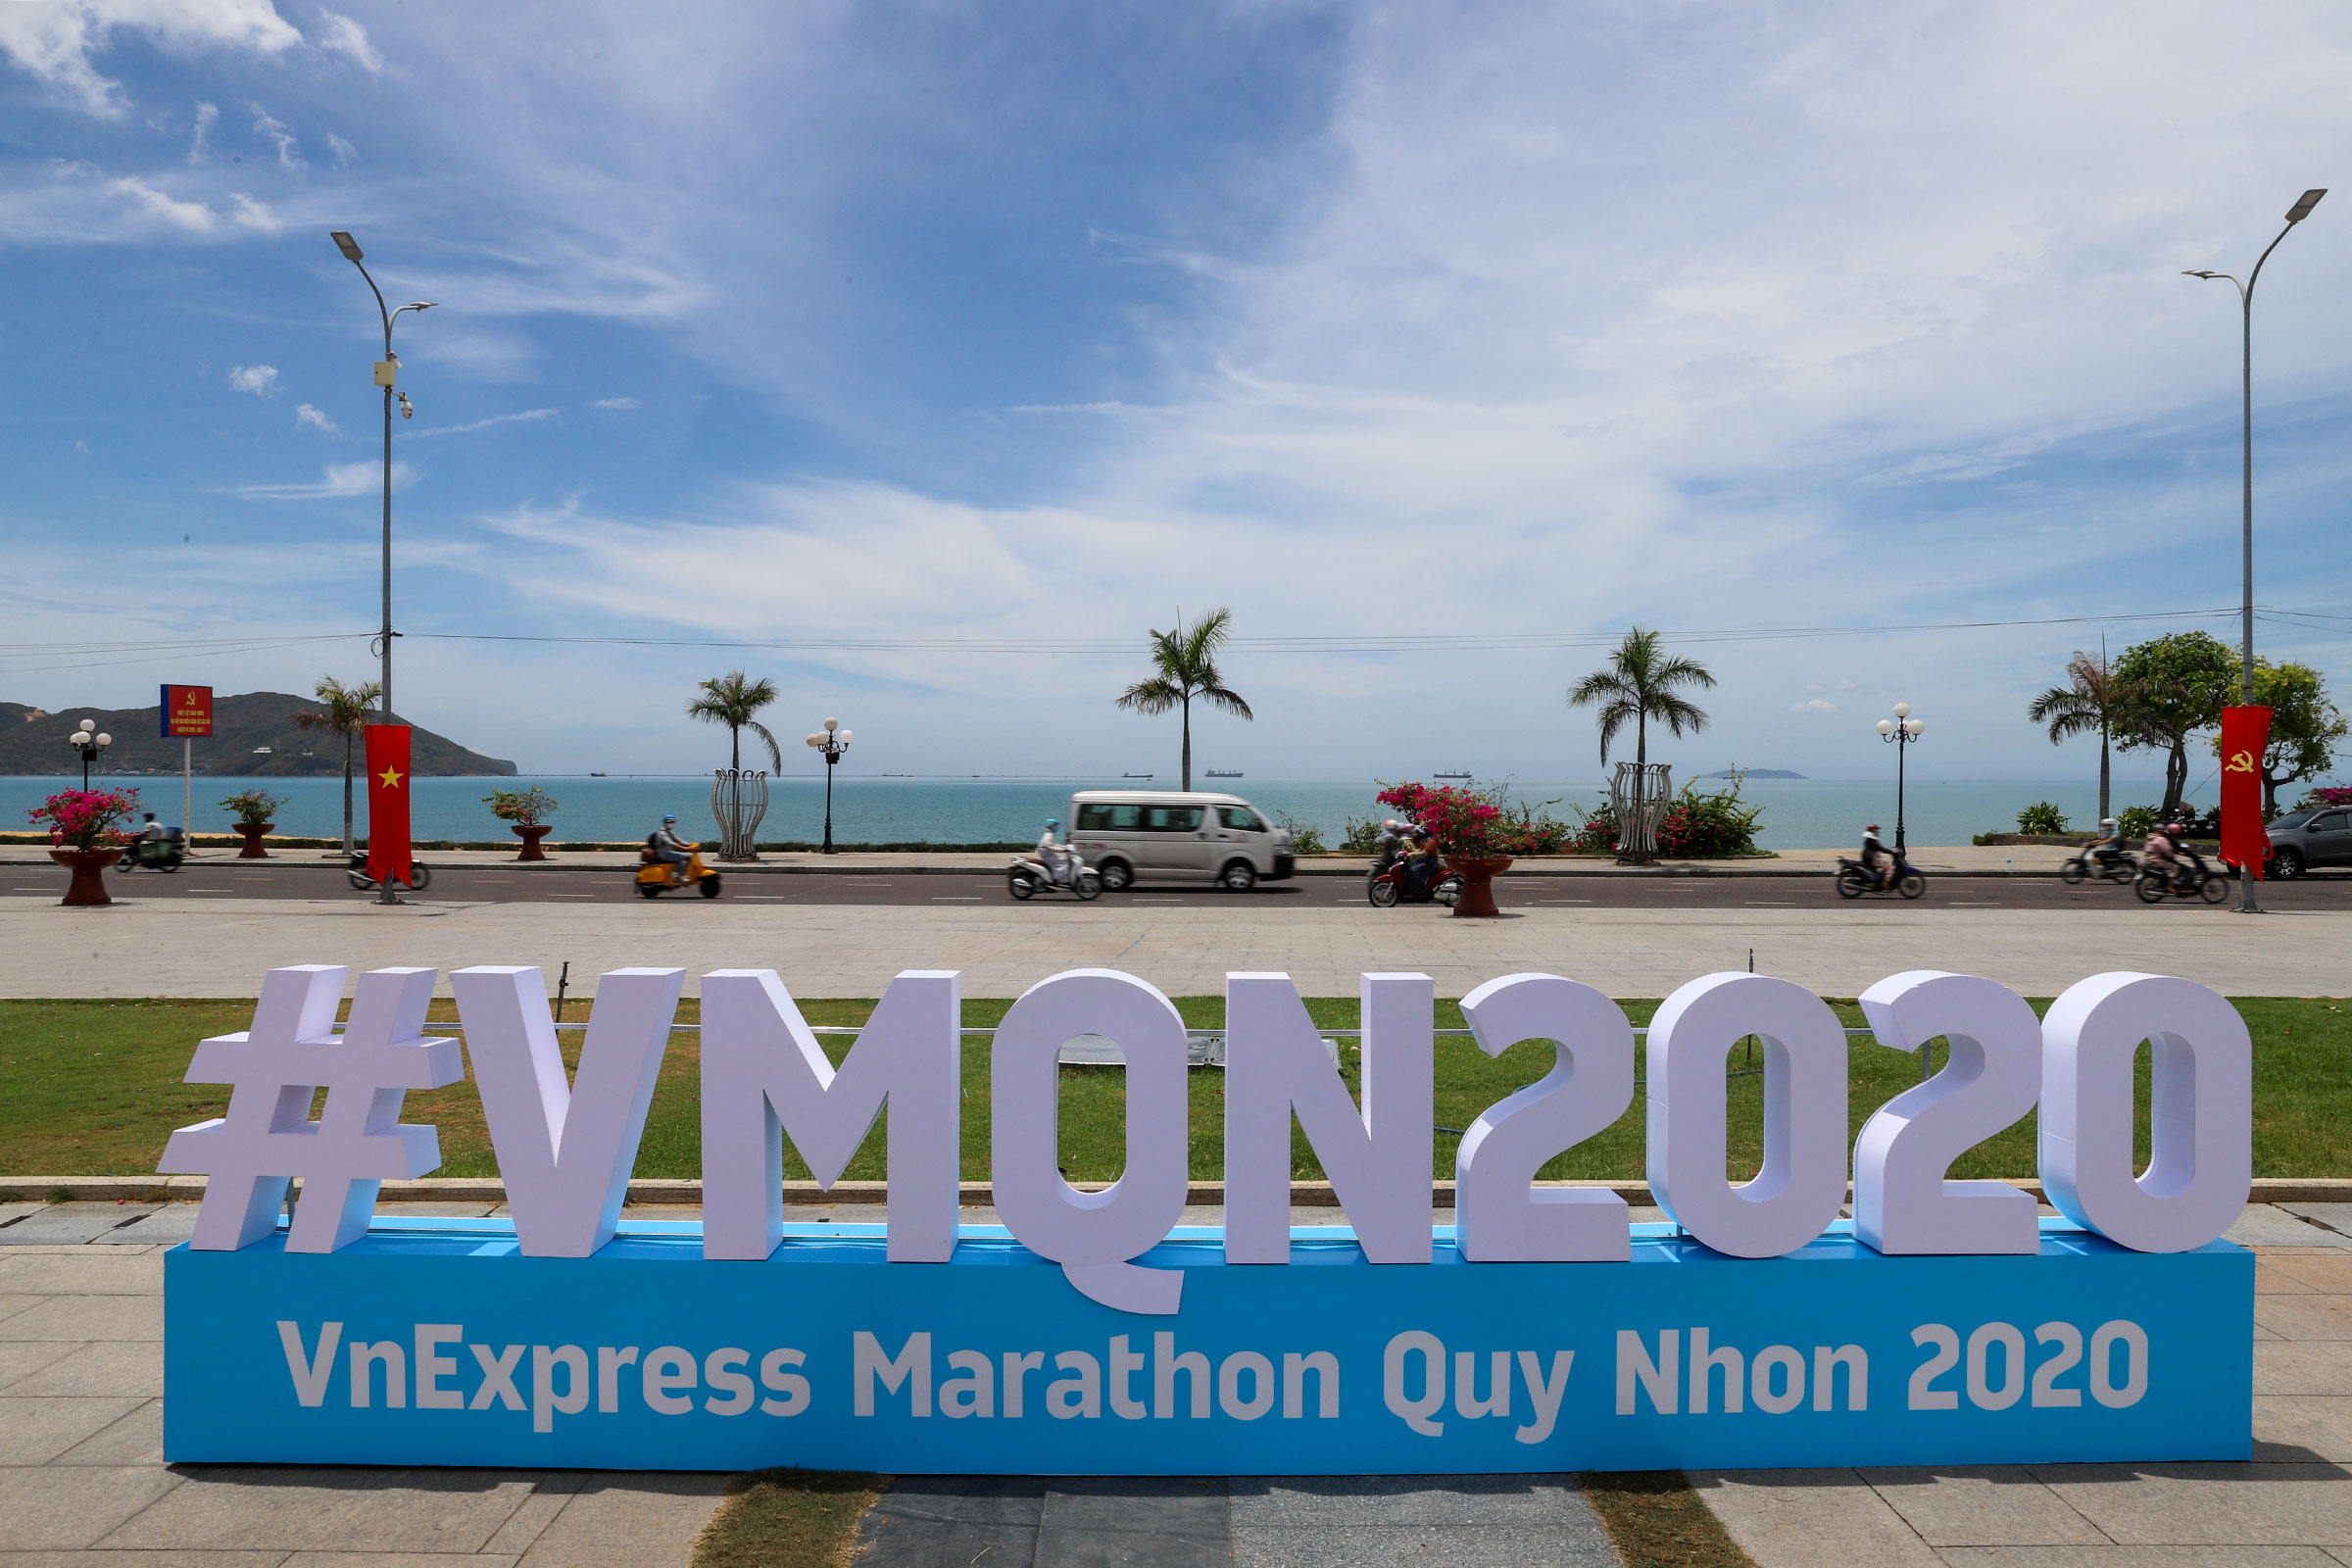 Beach hub gets a scrub ahead of VnExpress Marathon